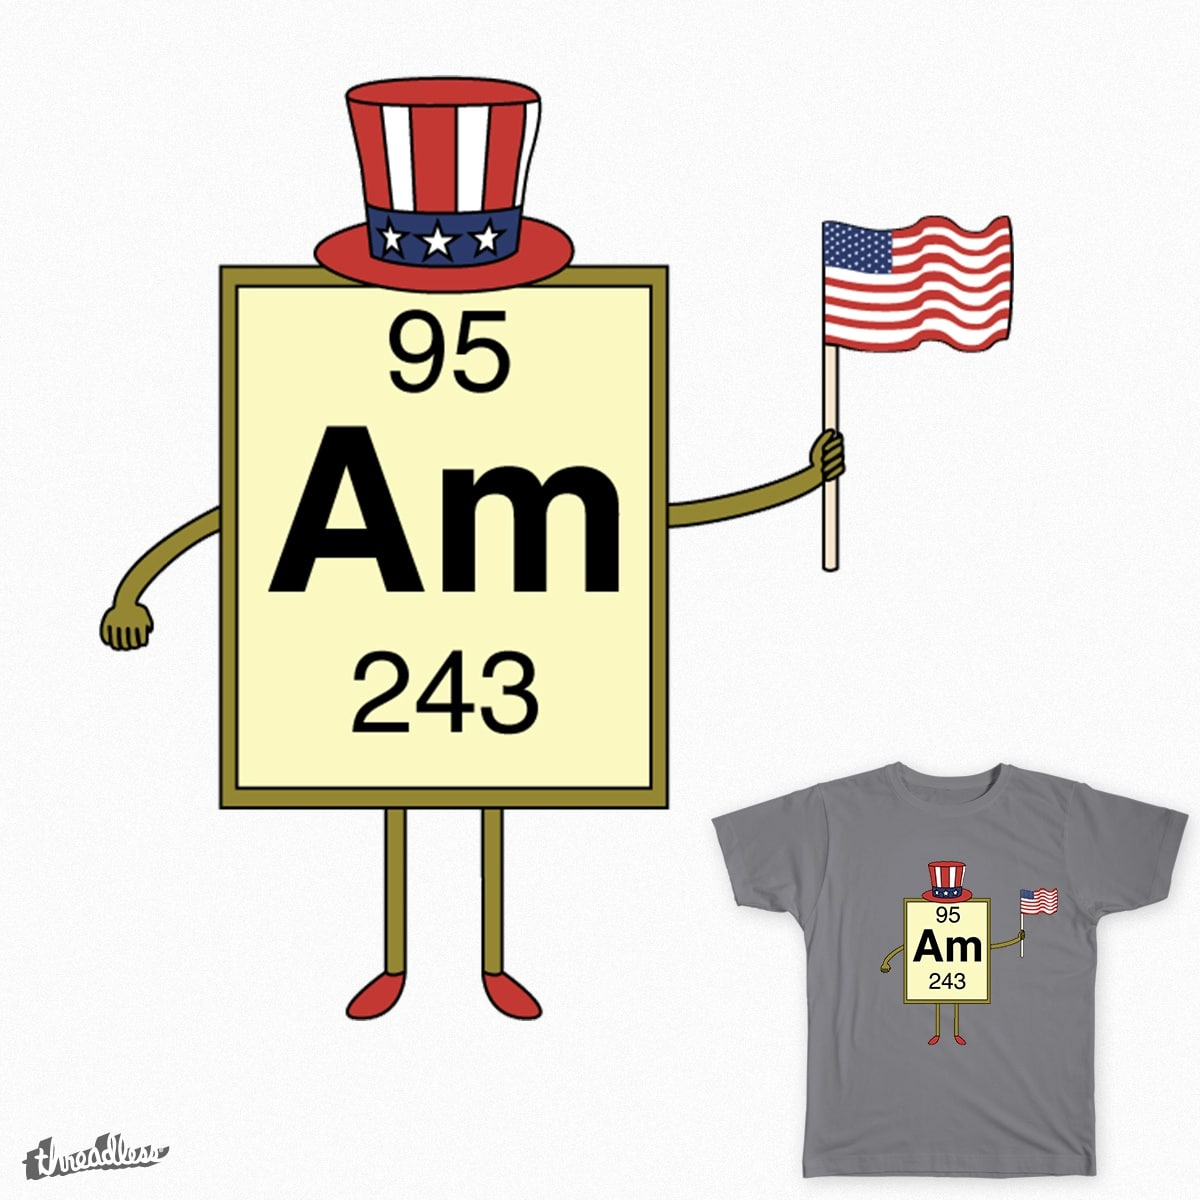 Americium Chemistry Joke by ZacUrquhart on Threadless